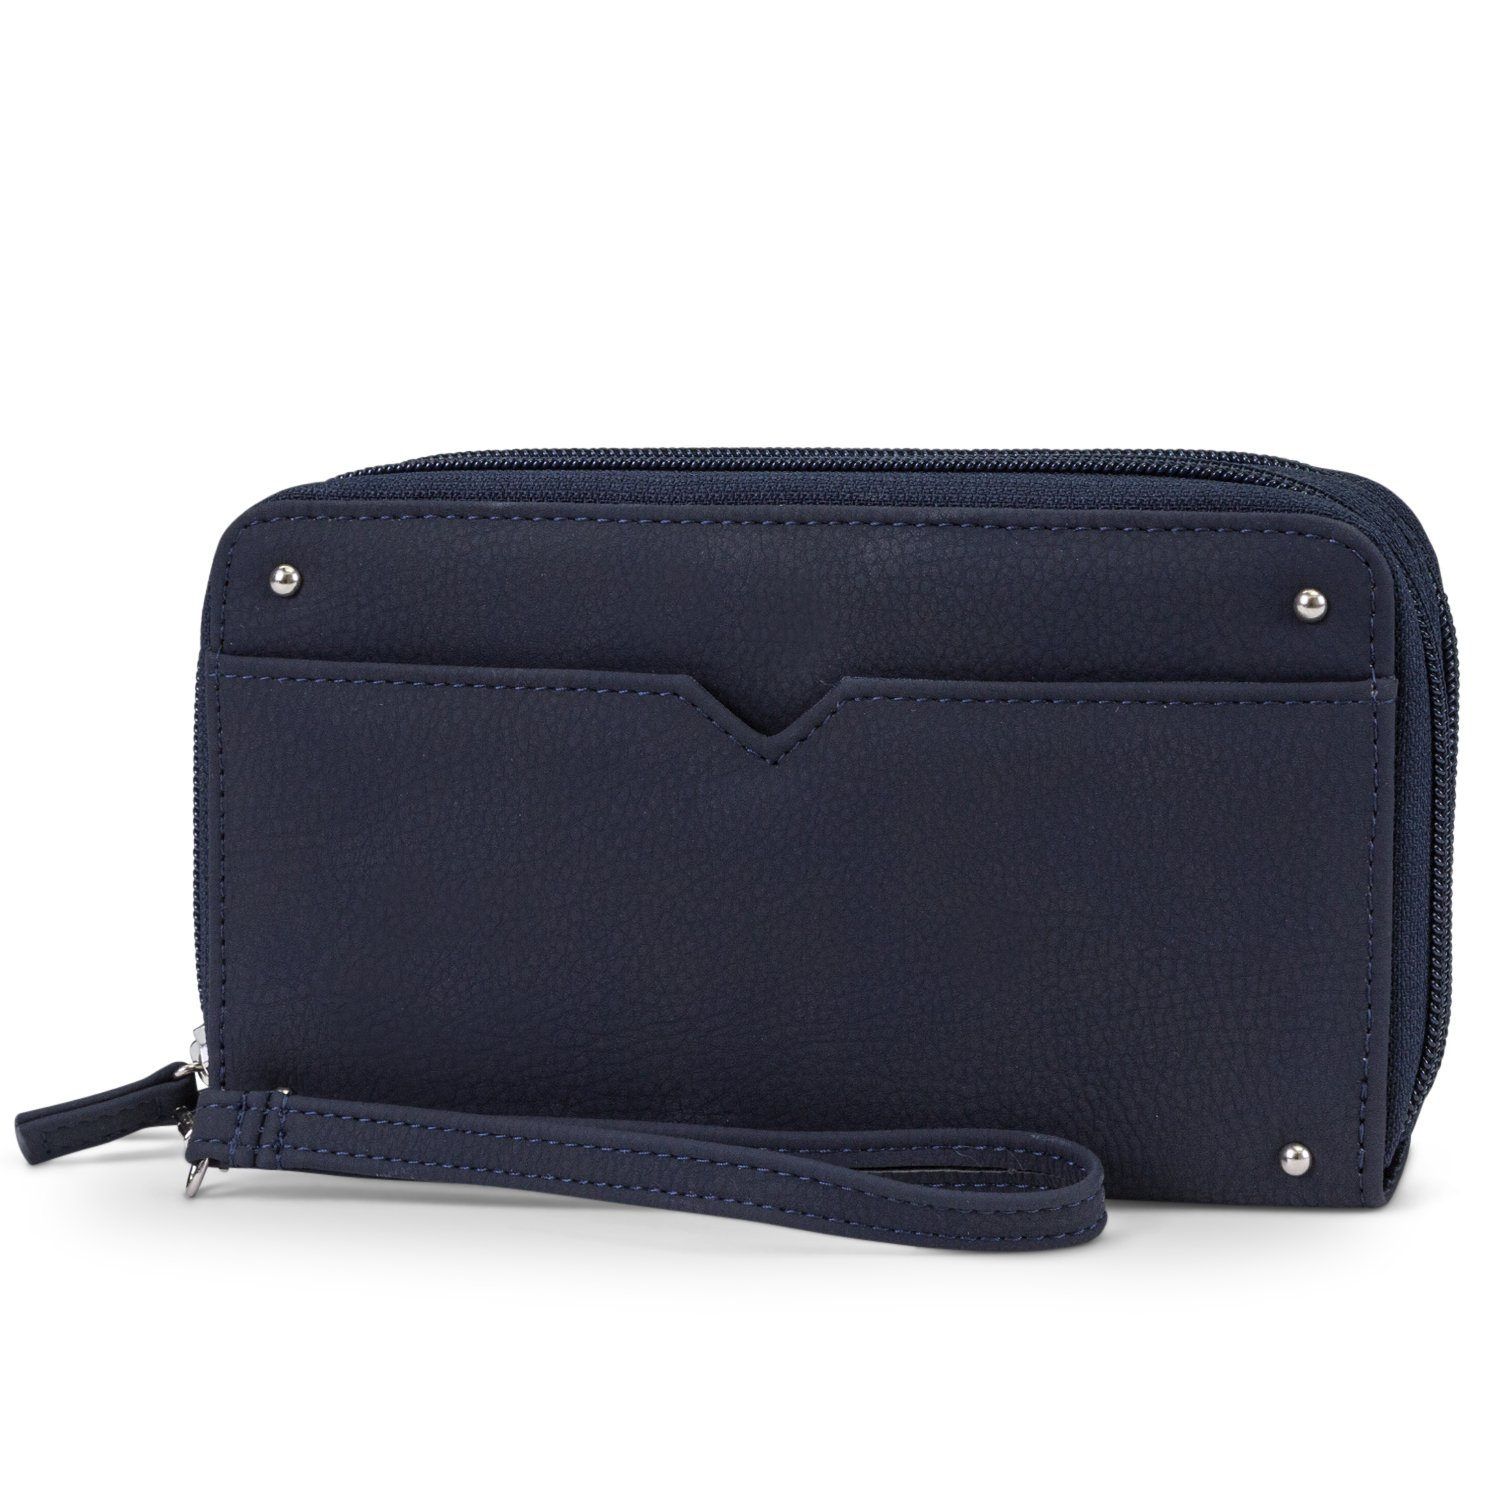 Mundi Double Zip Vegan Leather Womens RFID Clutch Wallet With Wristlet Strap (Navy)